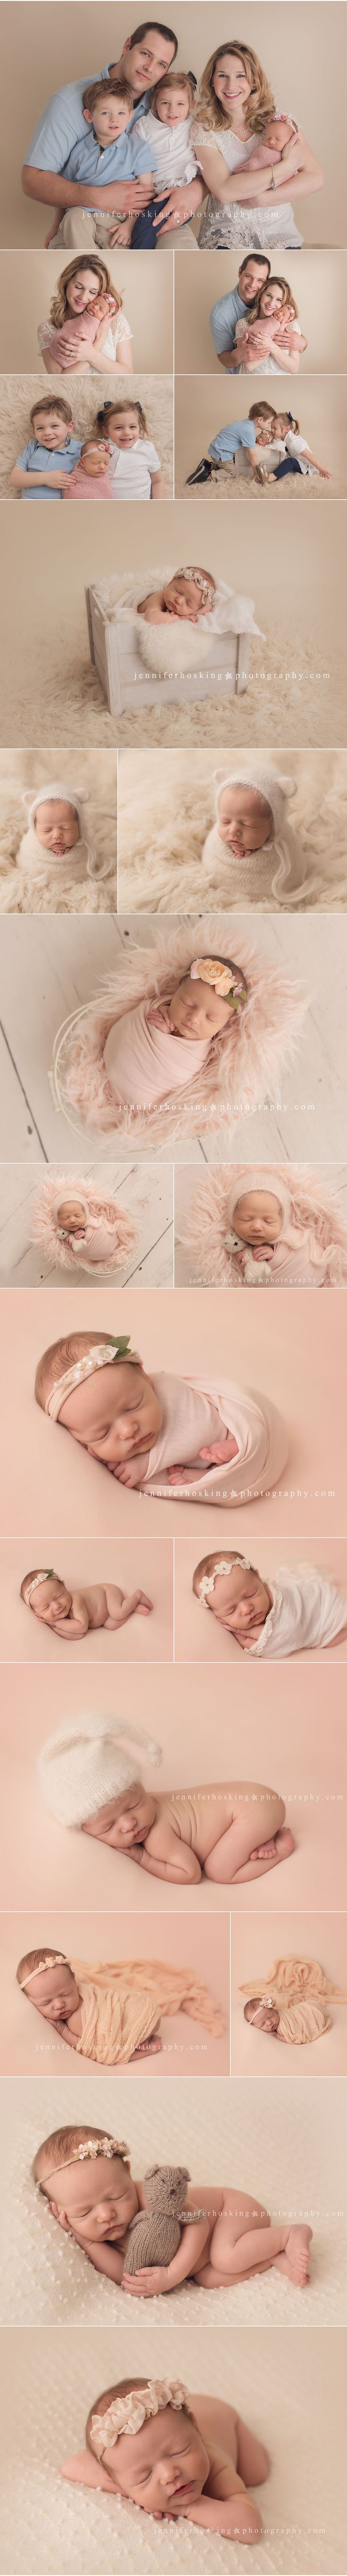 Newborn session with twin older siblings